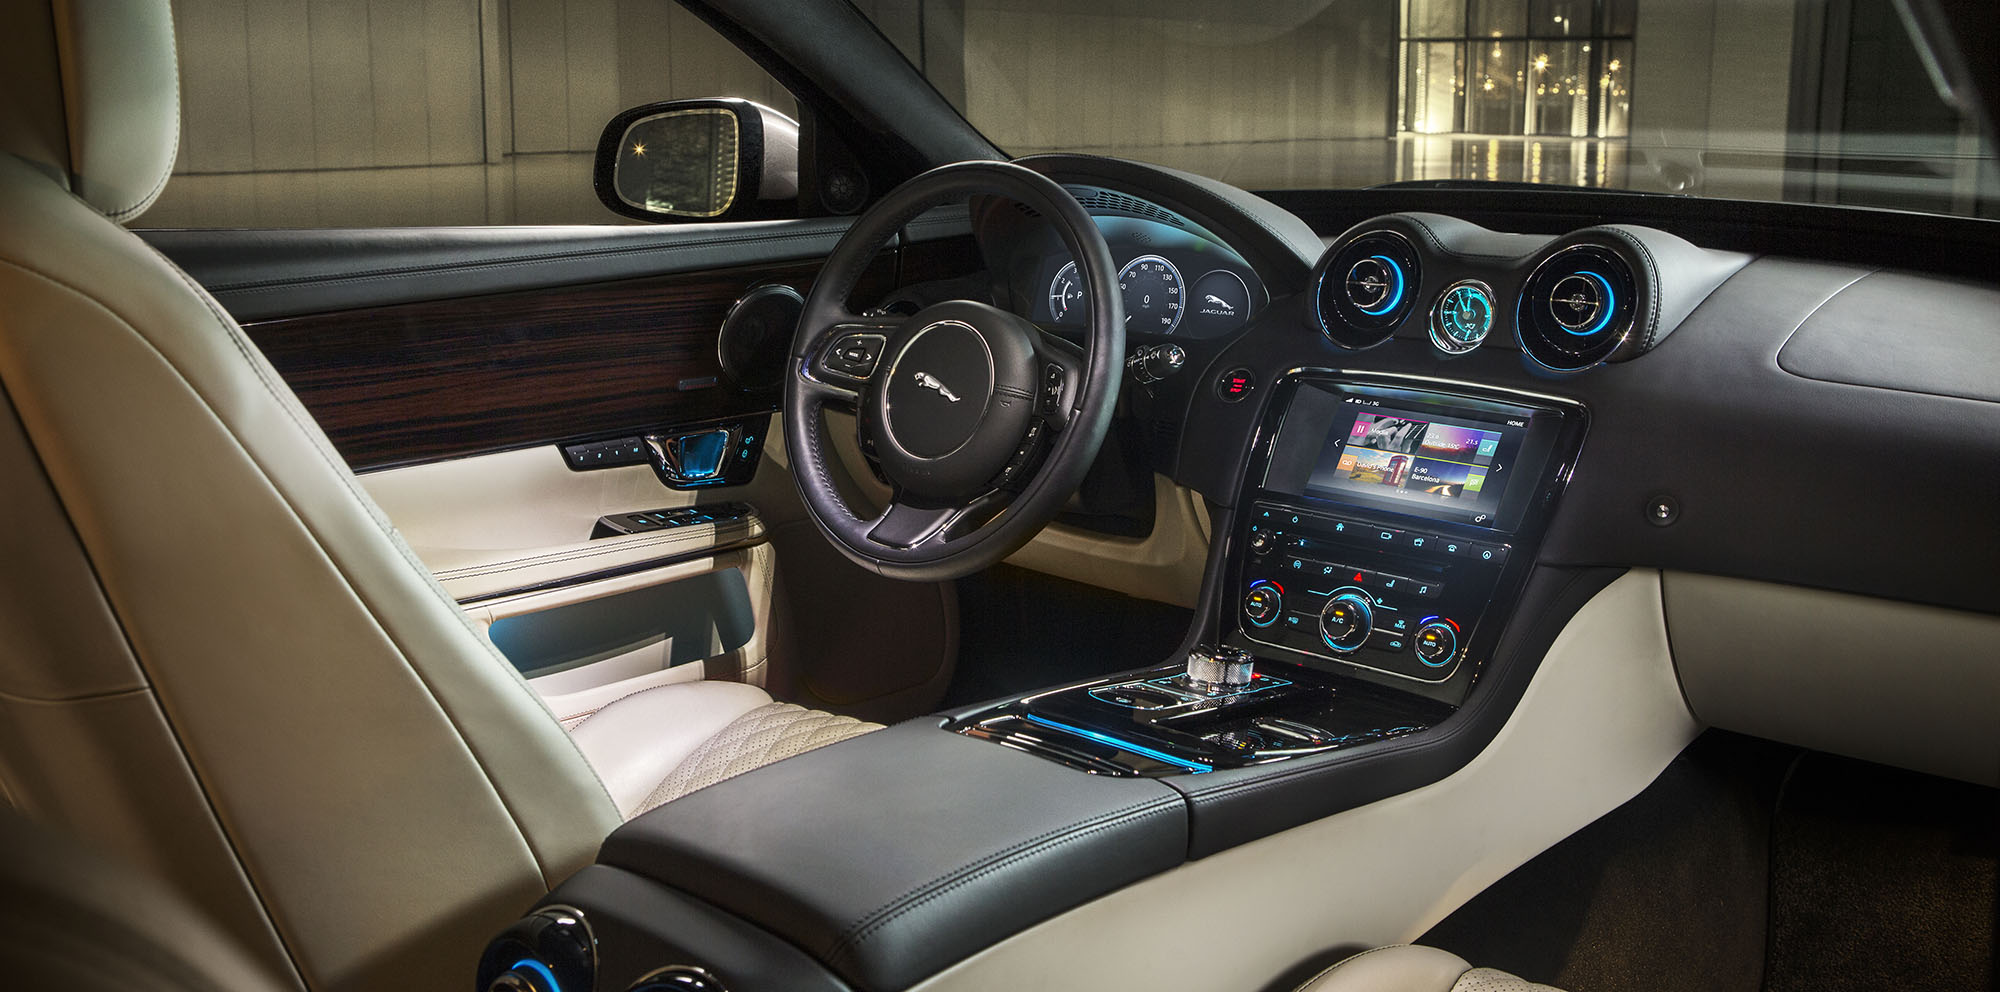 2016 jaguar xj update revealed photos caradvice. Black Bedroom Furniture Sets. Home Design Ideas